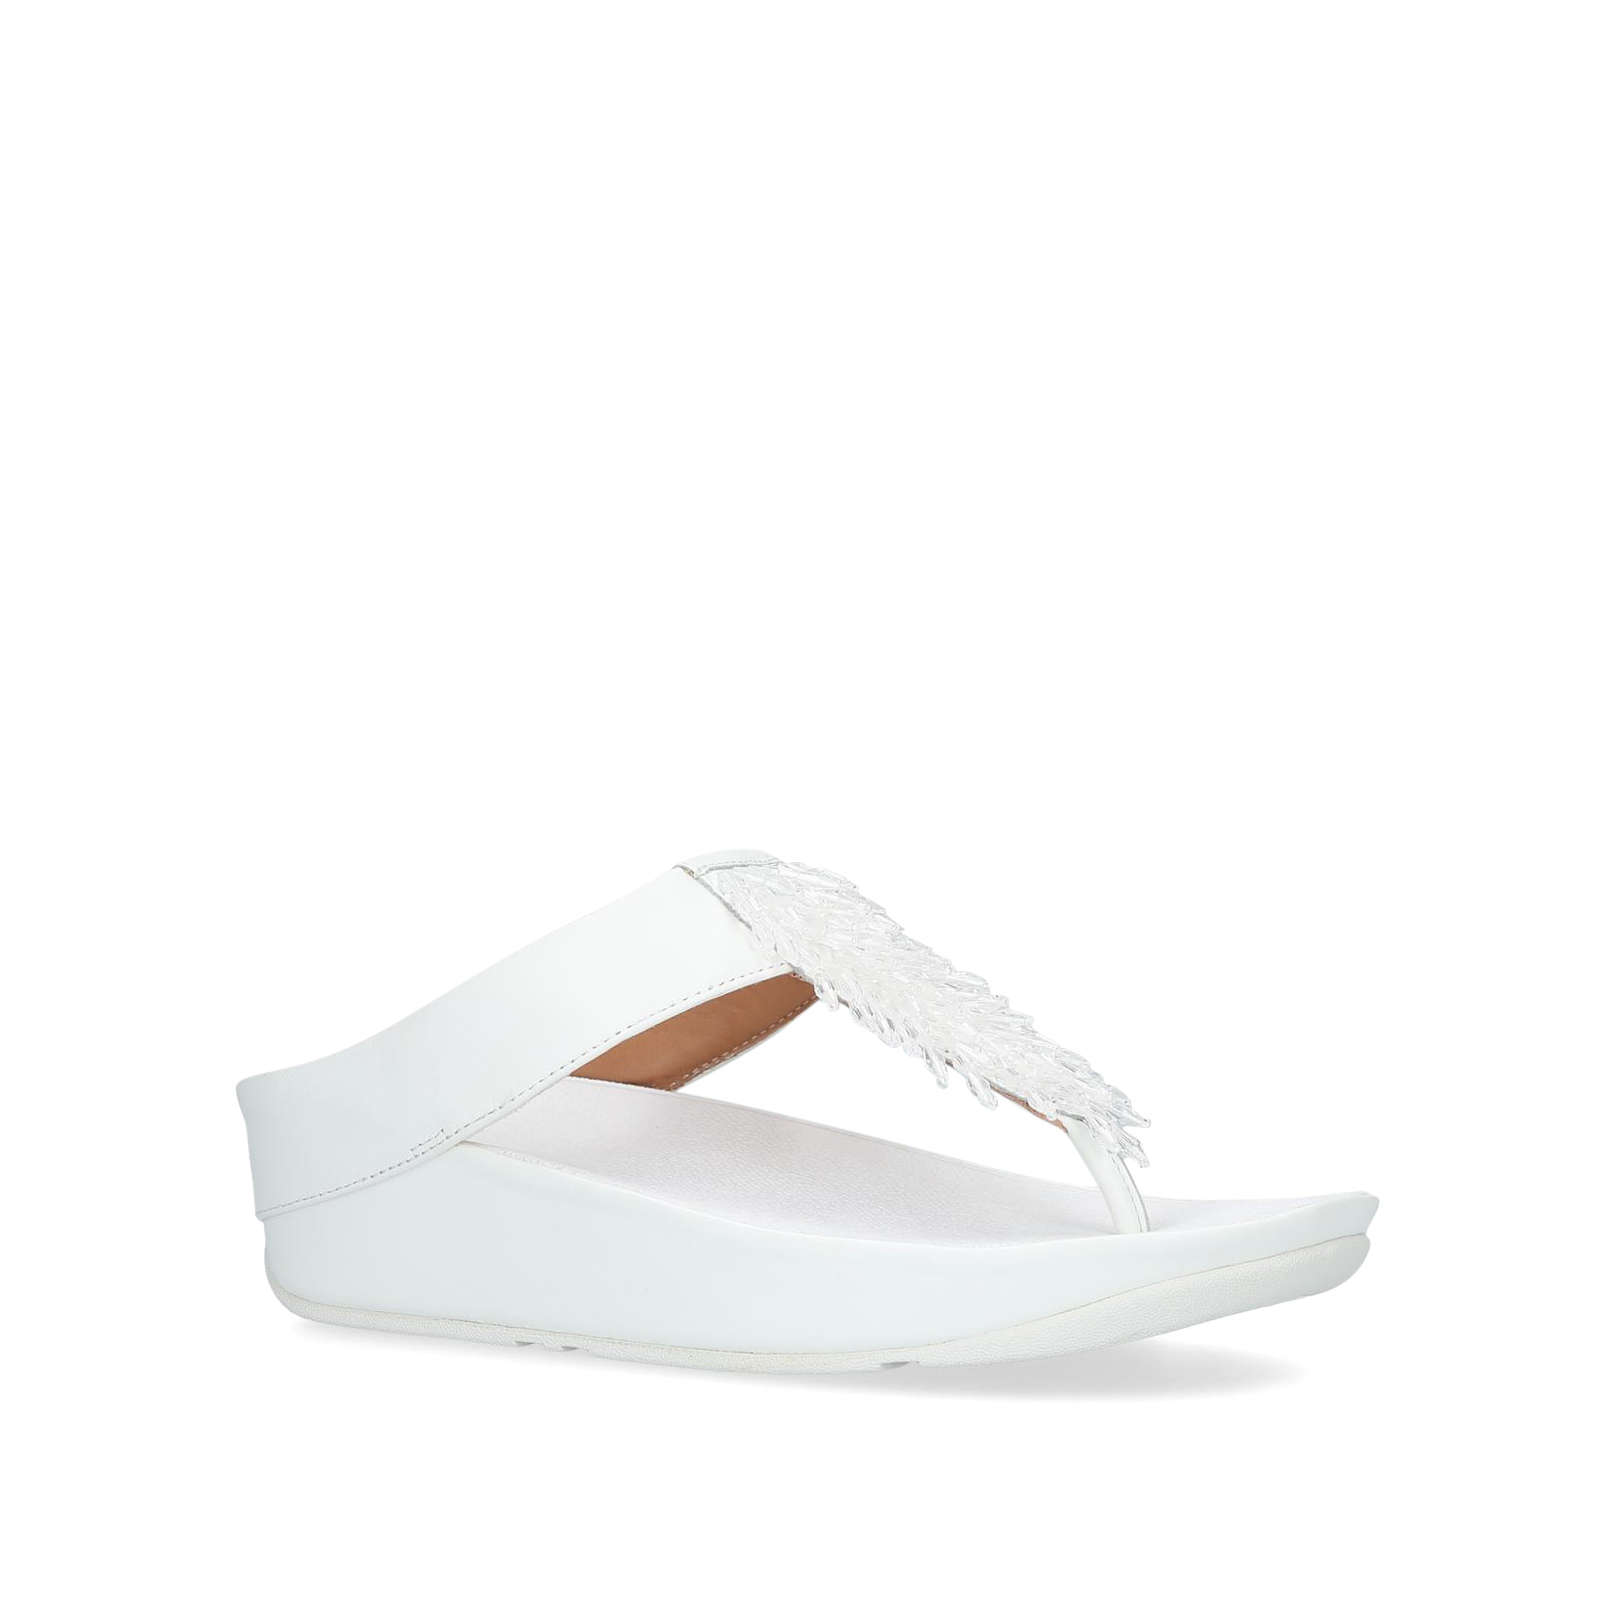 f02f1b439c18 RUMBA TOE Rumba Toe Summer Fitflop White by FITFLOP